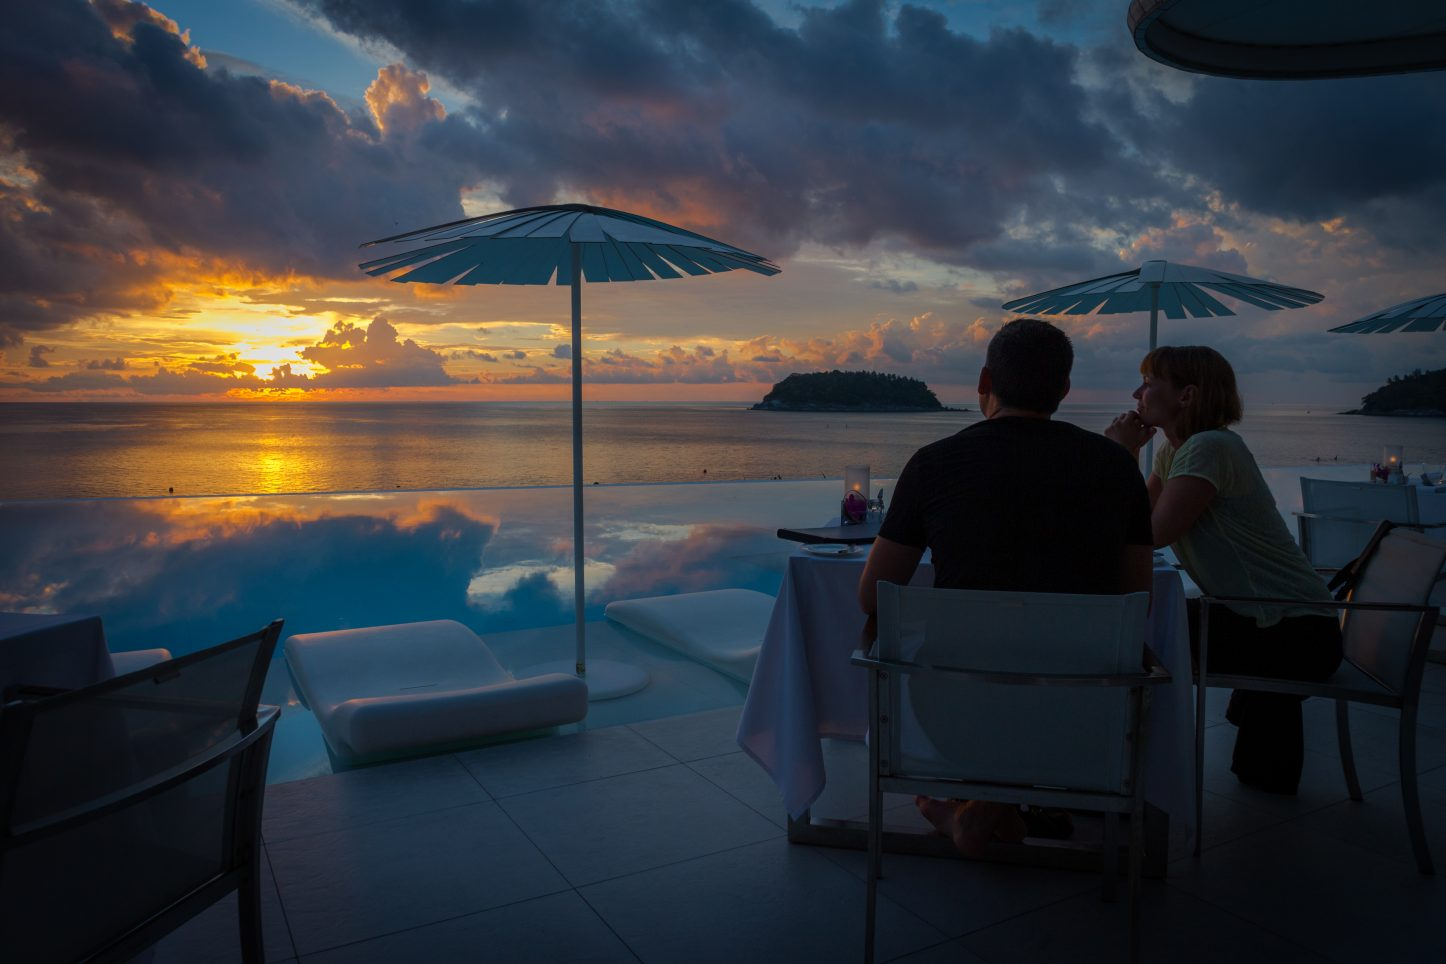 'Garden of Eden' Valentine's Day Experiences at Kata Rocks 2019 Phuket